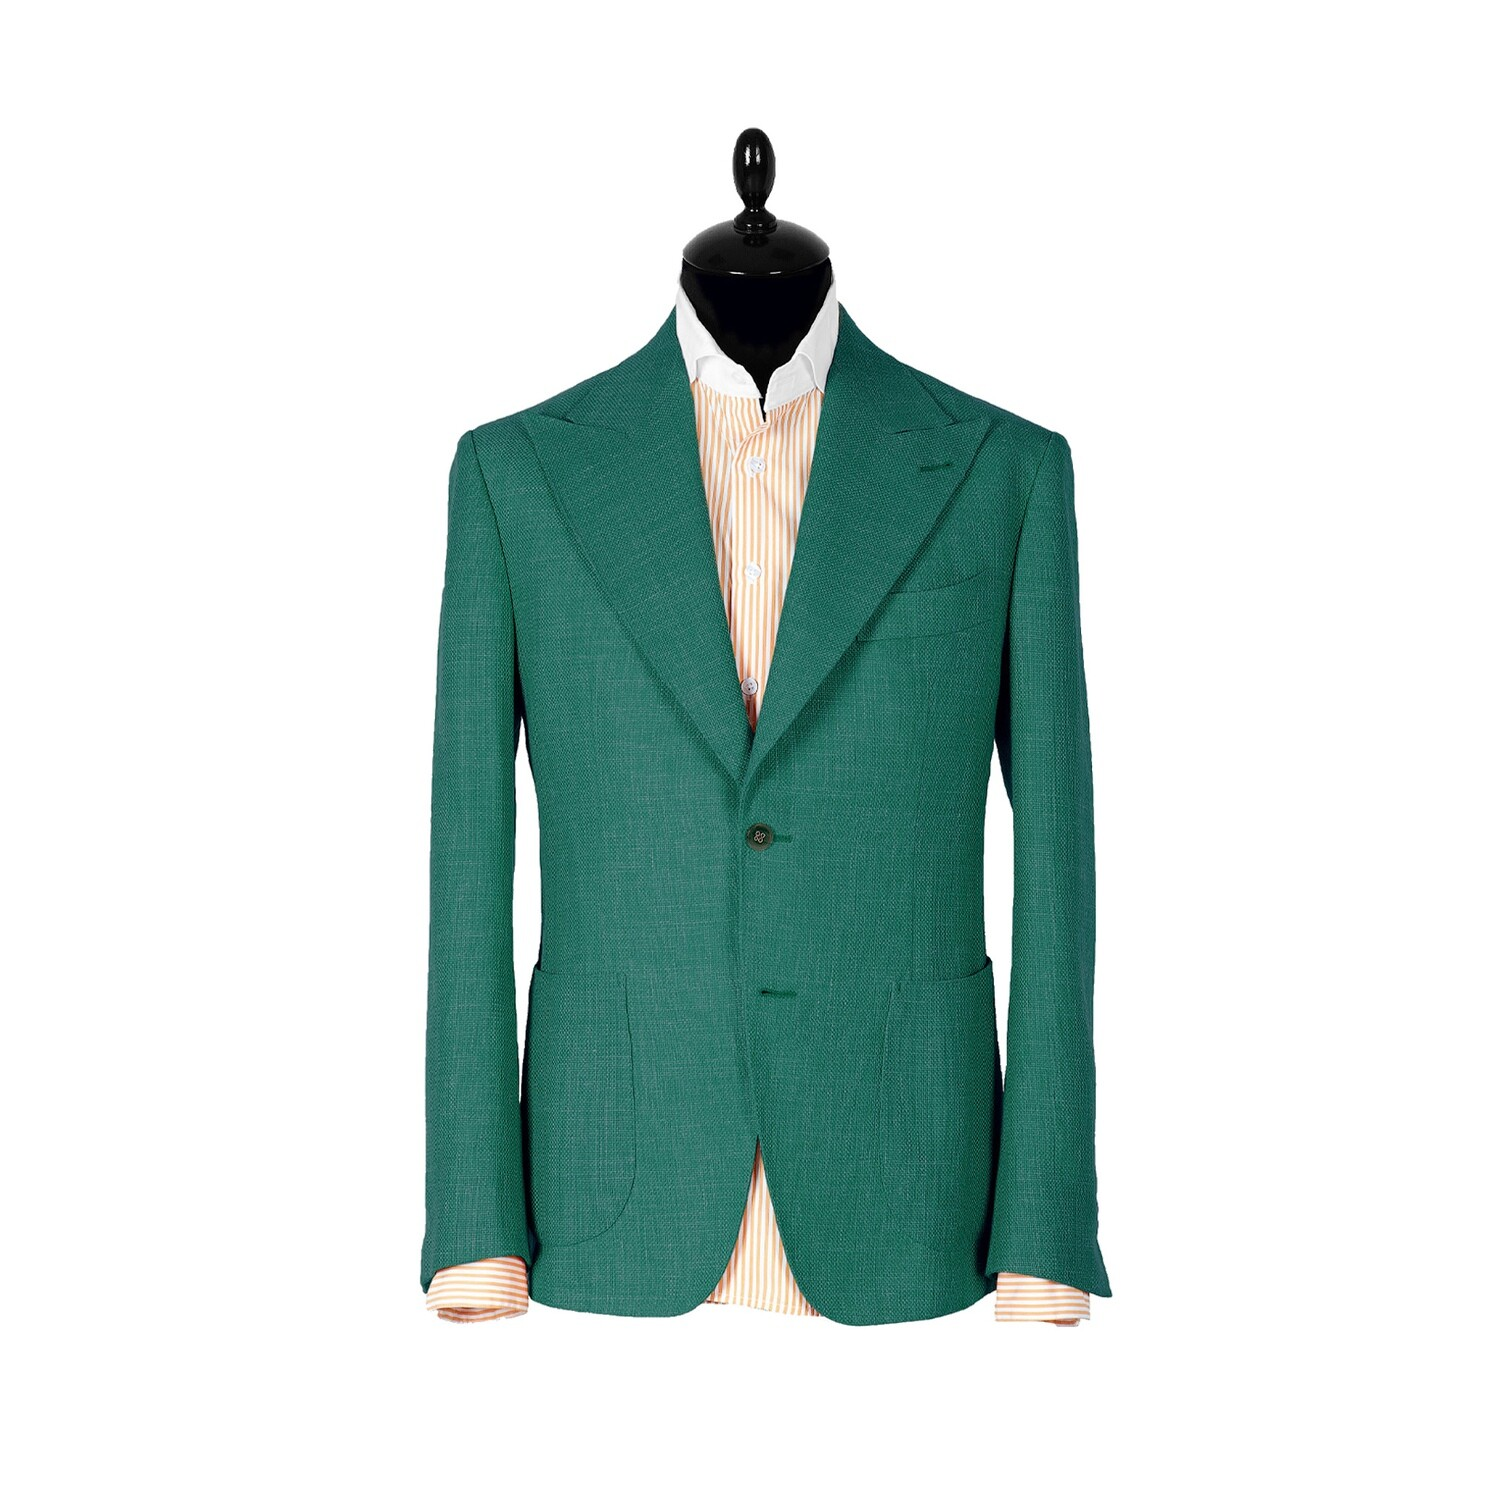 Green single-breasted jacket. Havana collection